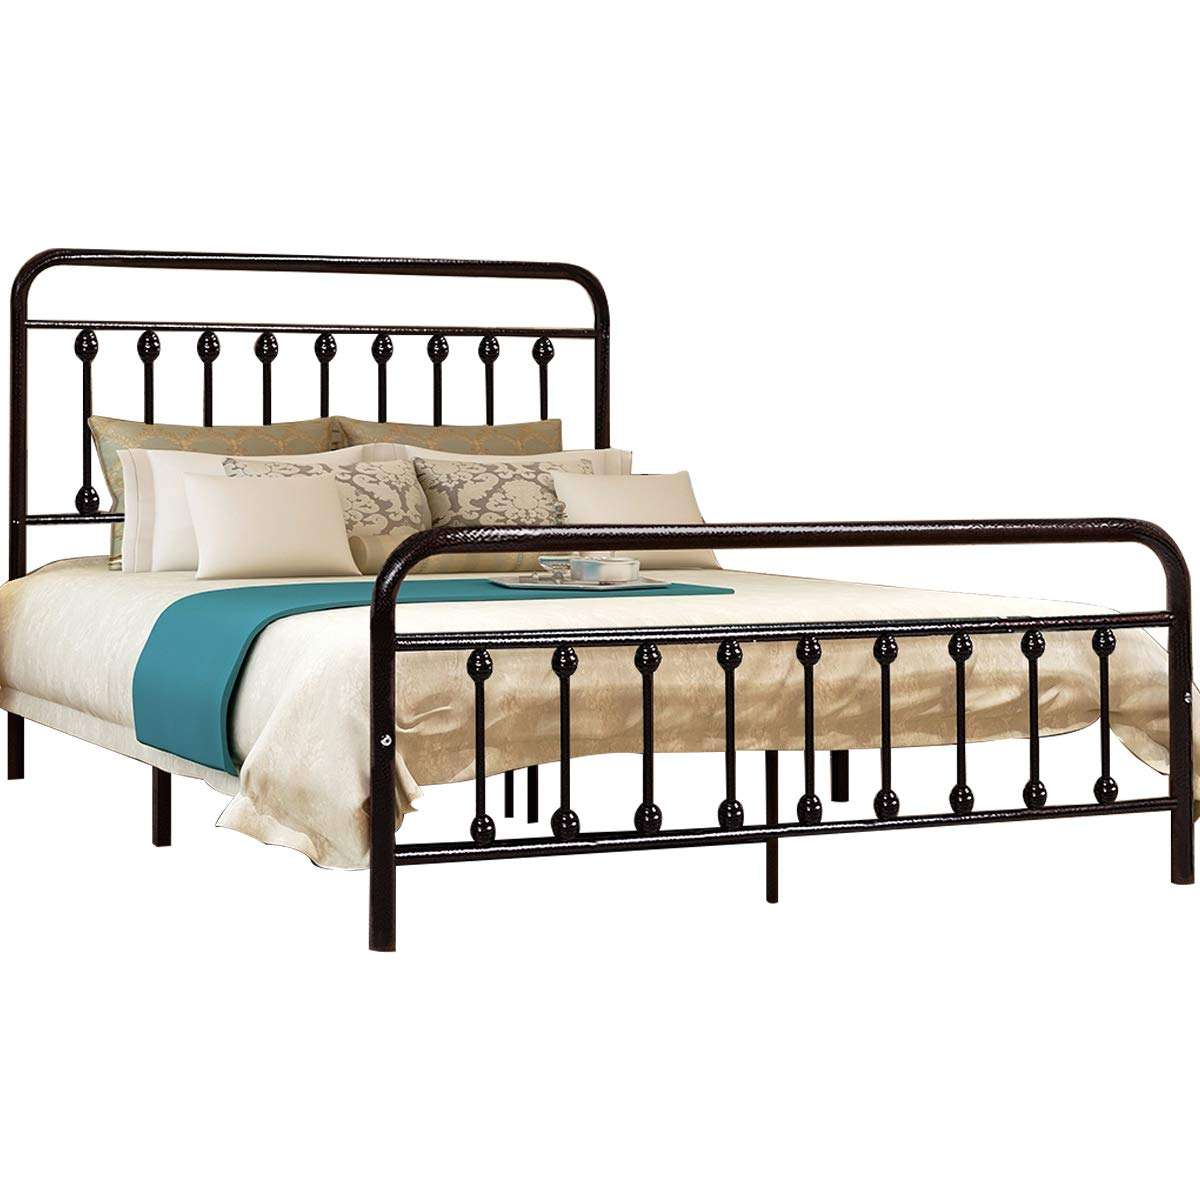 Dark Copper Metal Platform Bed Box Spring Replacement Foundation with Headboards & Hevay Duty Steel Slats, Full HOMERECOMMEND YD634Full